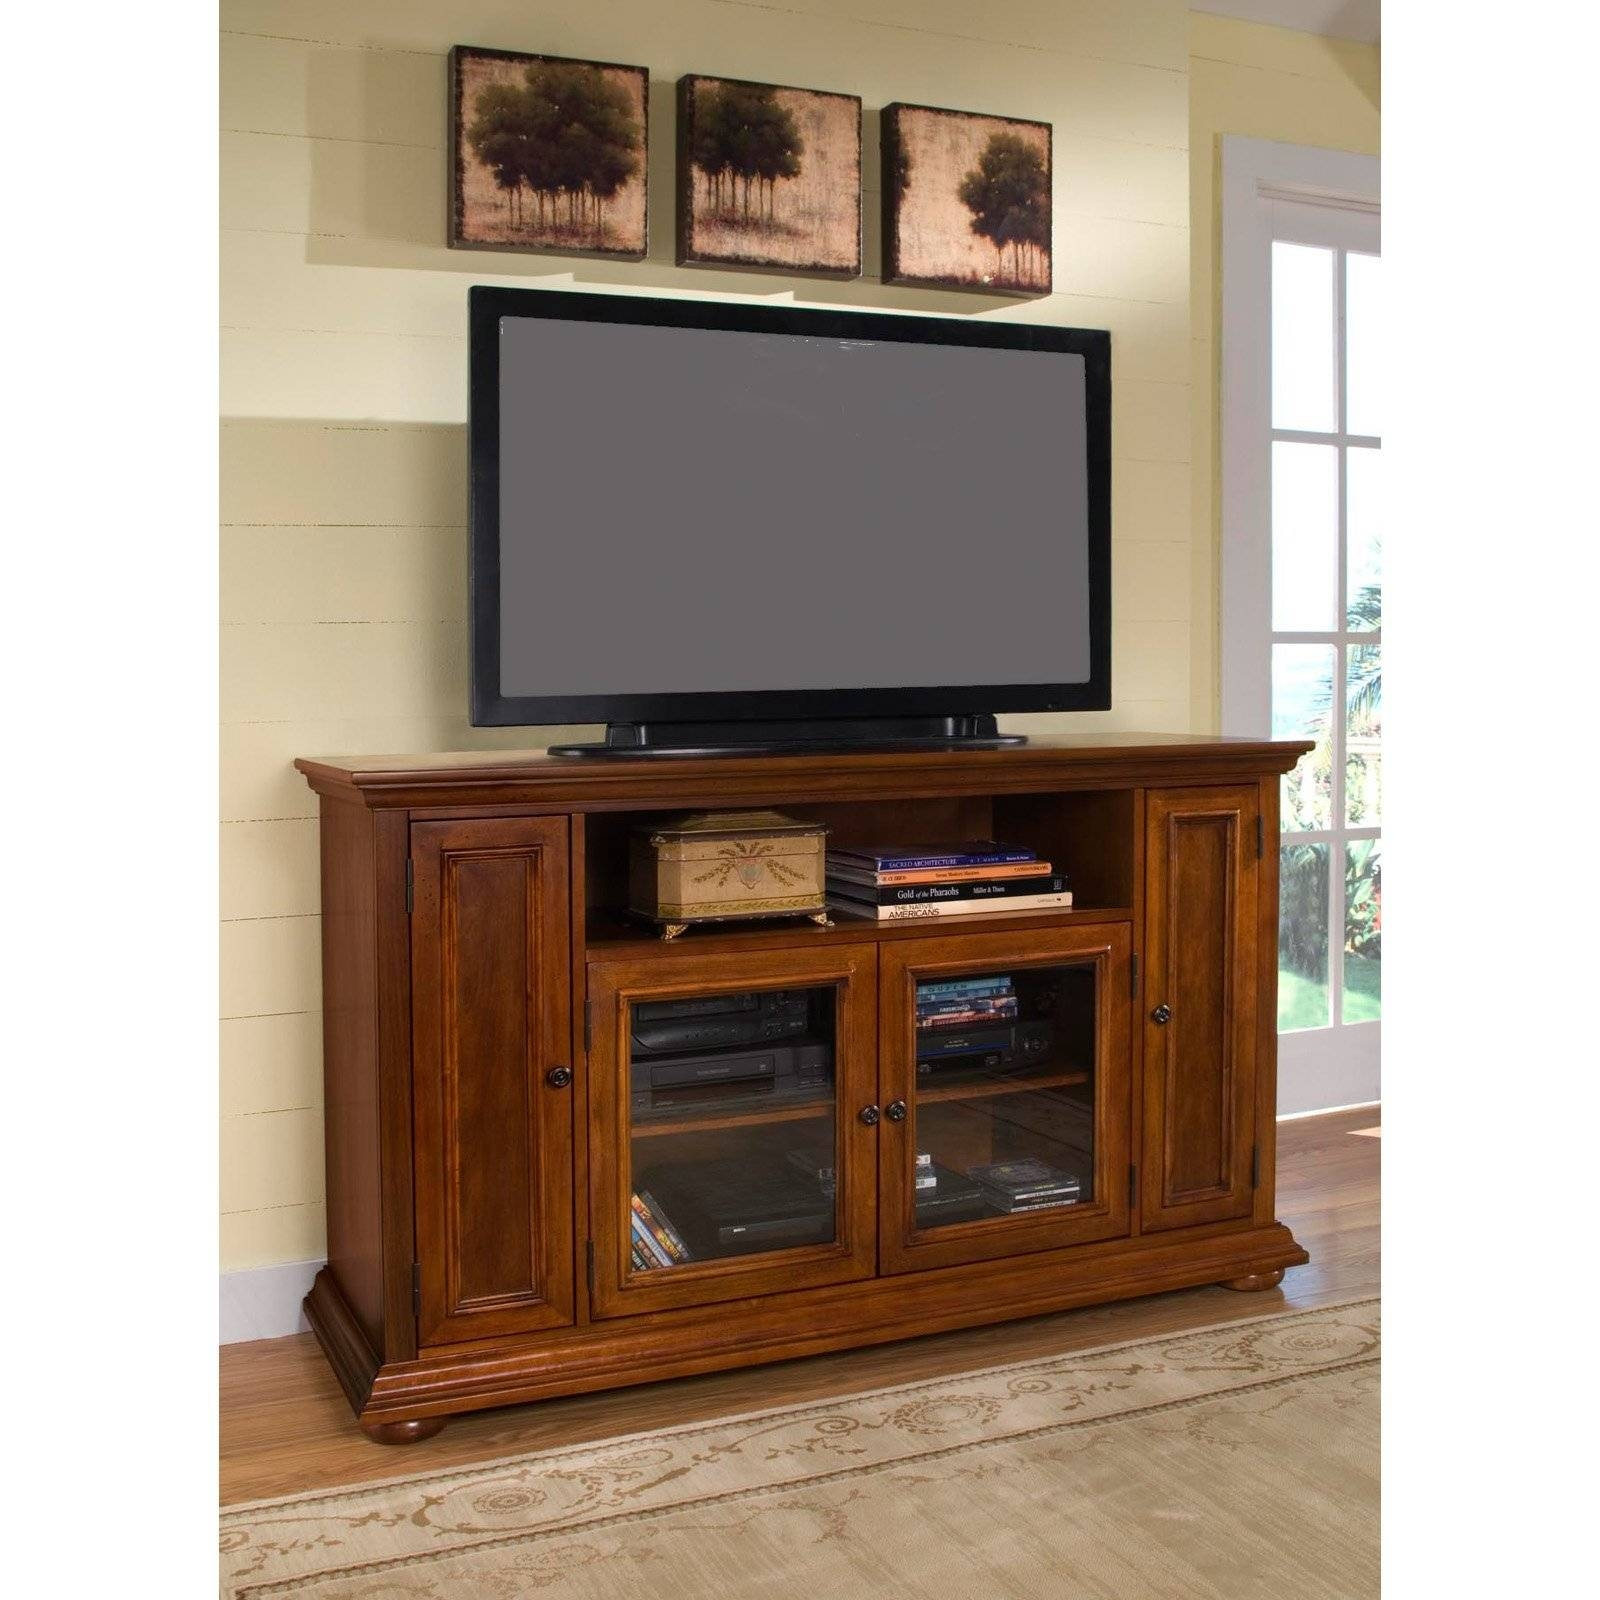 Rectangle Black Flat Screen Tv Over Brown Wooden Cabinet With Intended For Cream Tv Cabinets (View 5 of 15)